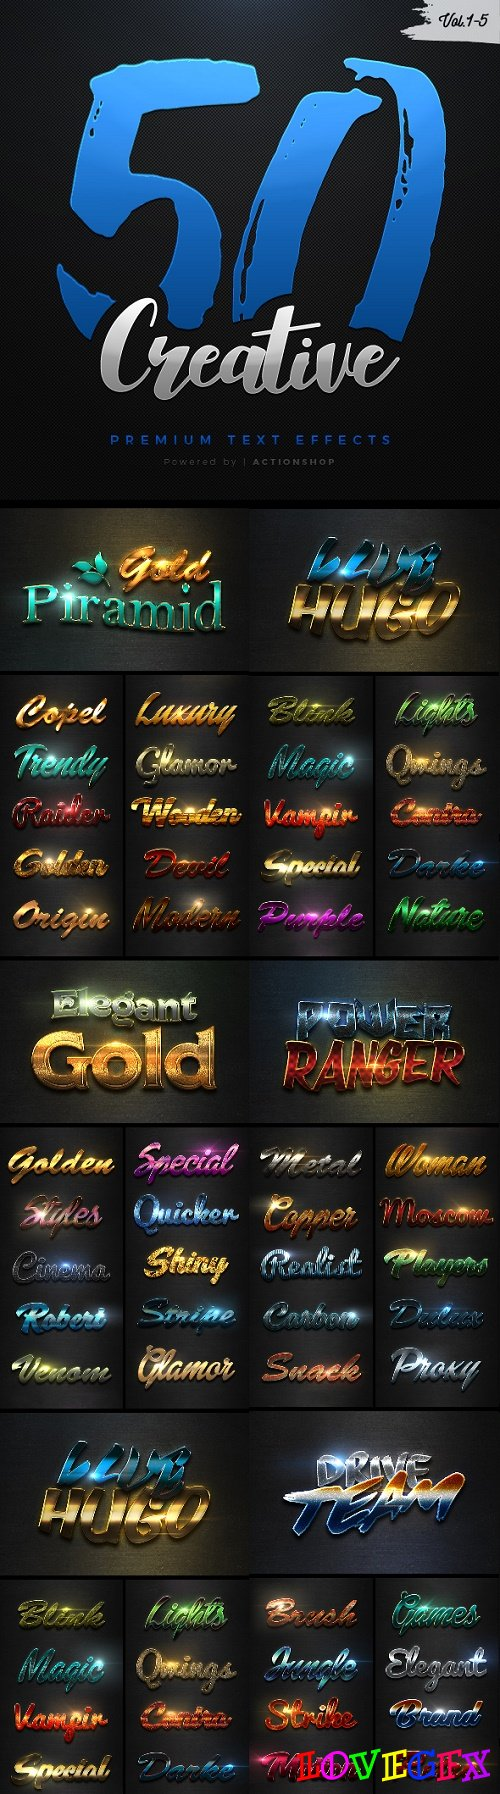 50 Creative Text Effects Bundle - 21197169